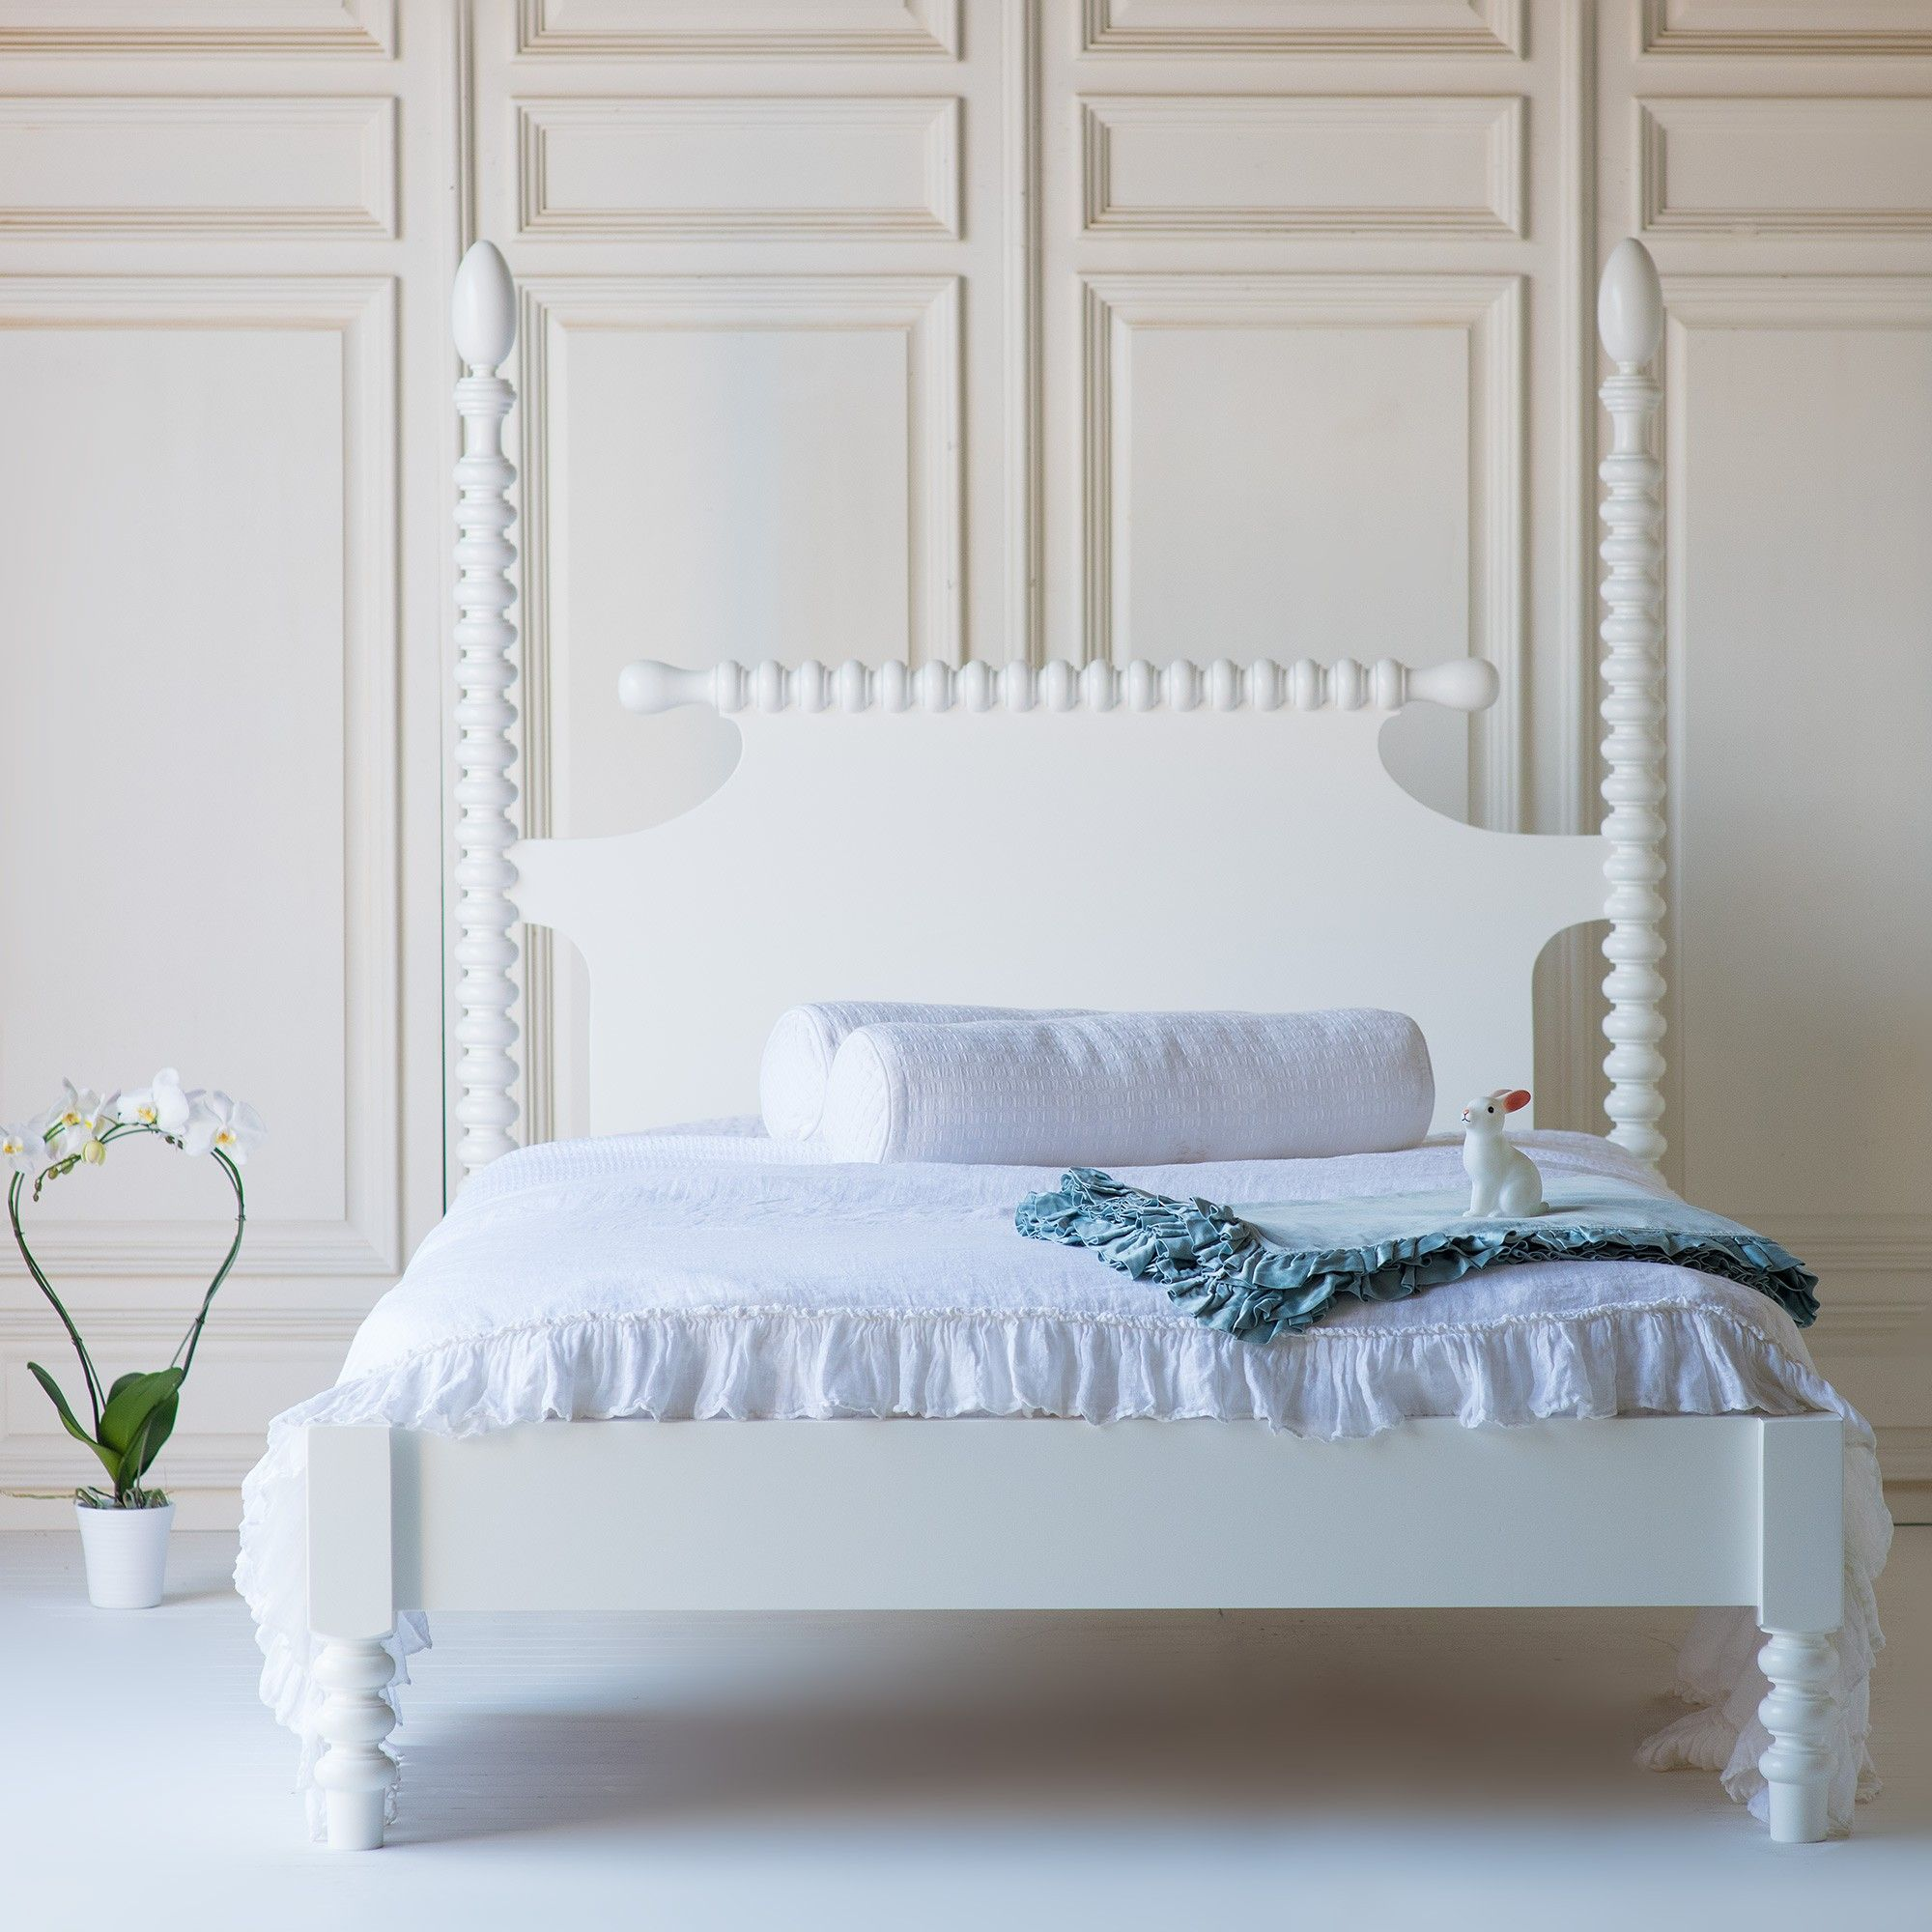 Gwendoline Spindle Bed Low Footboard By The Beautiful Bed Company